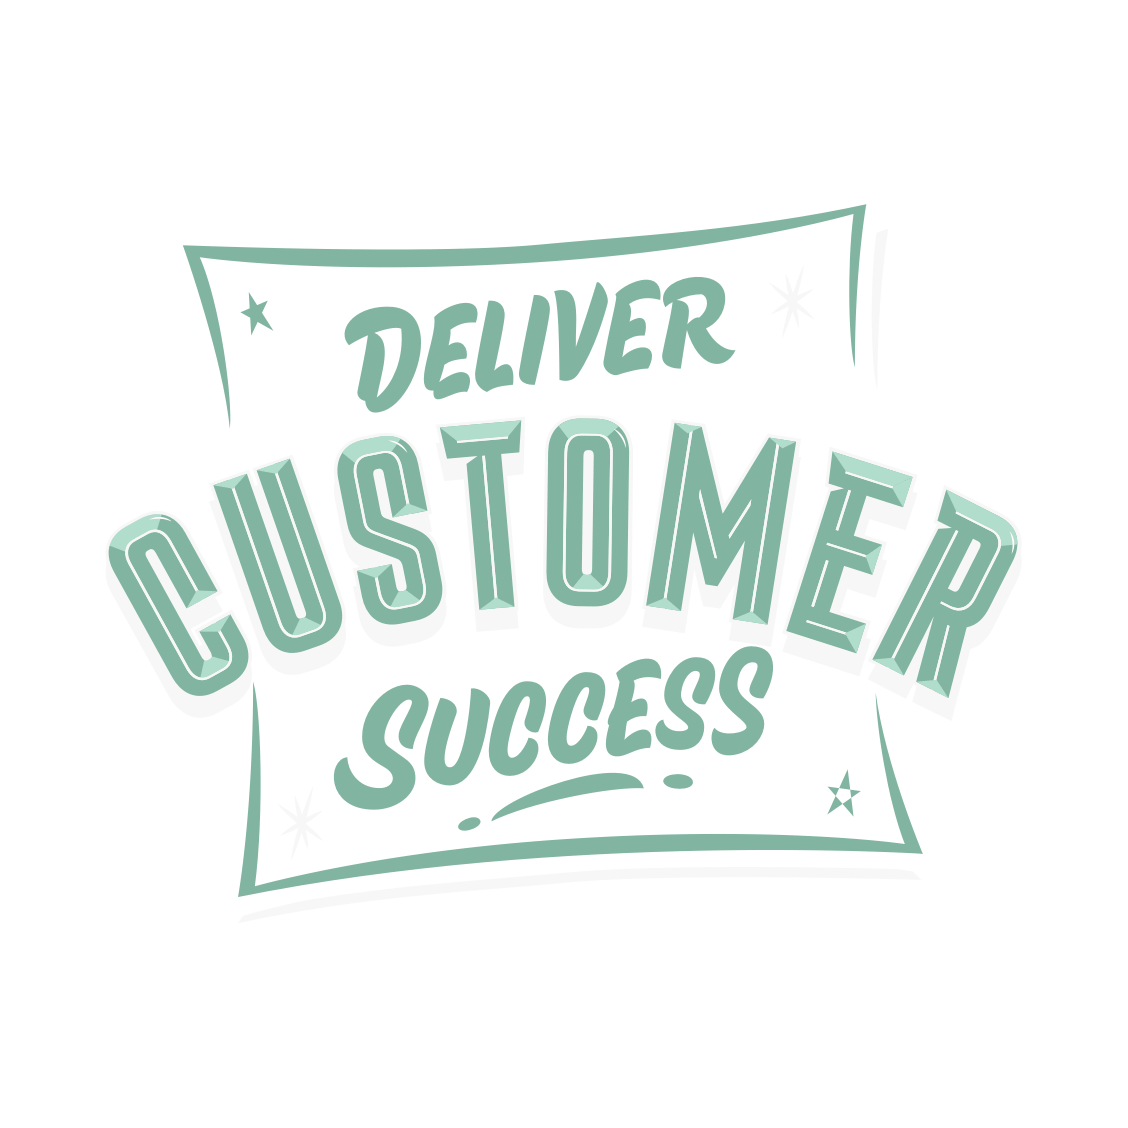 Deliver customer success